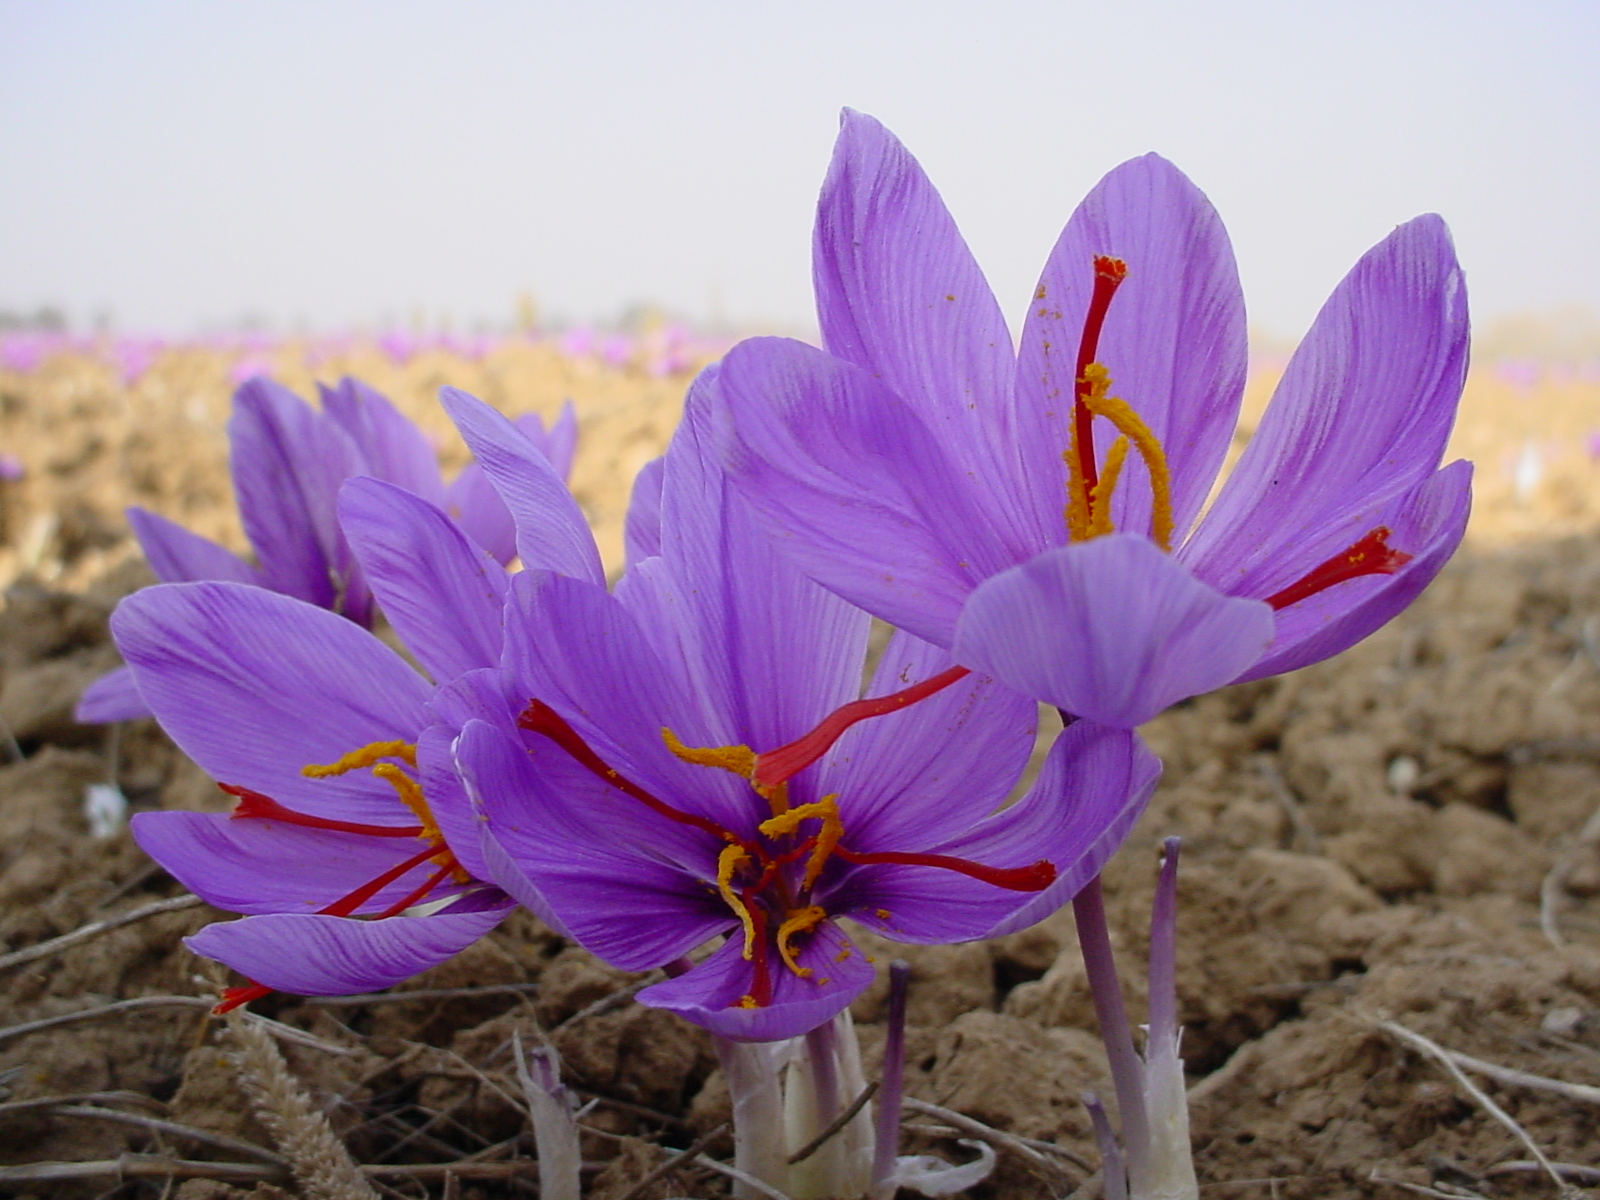 flowers for flower lovers.: Saffron flowers details.